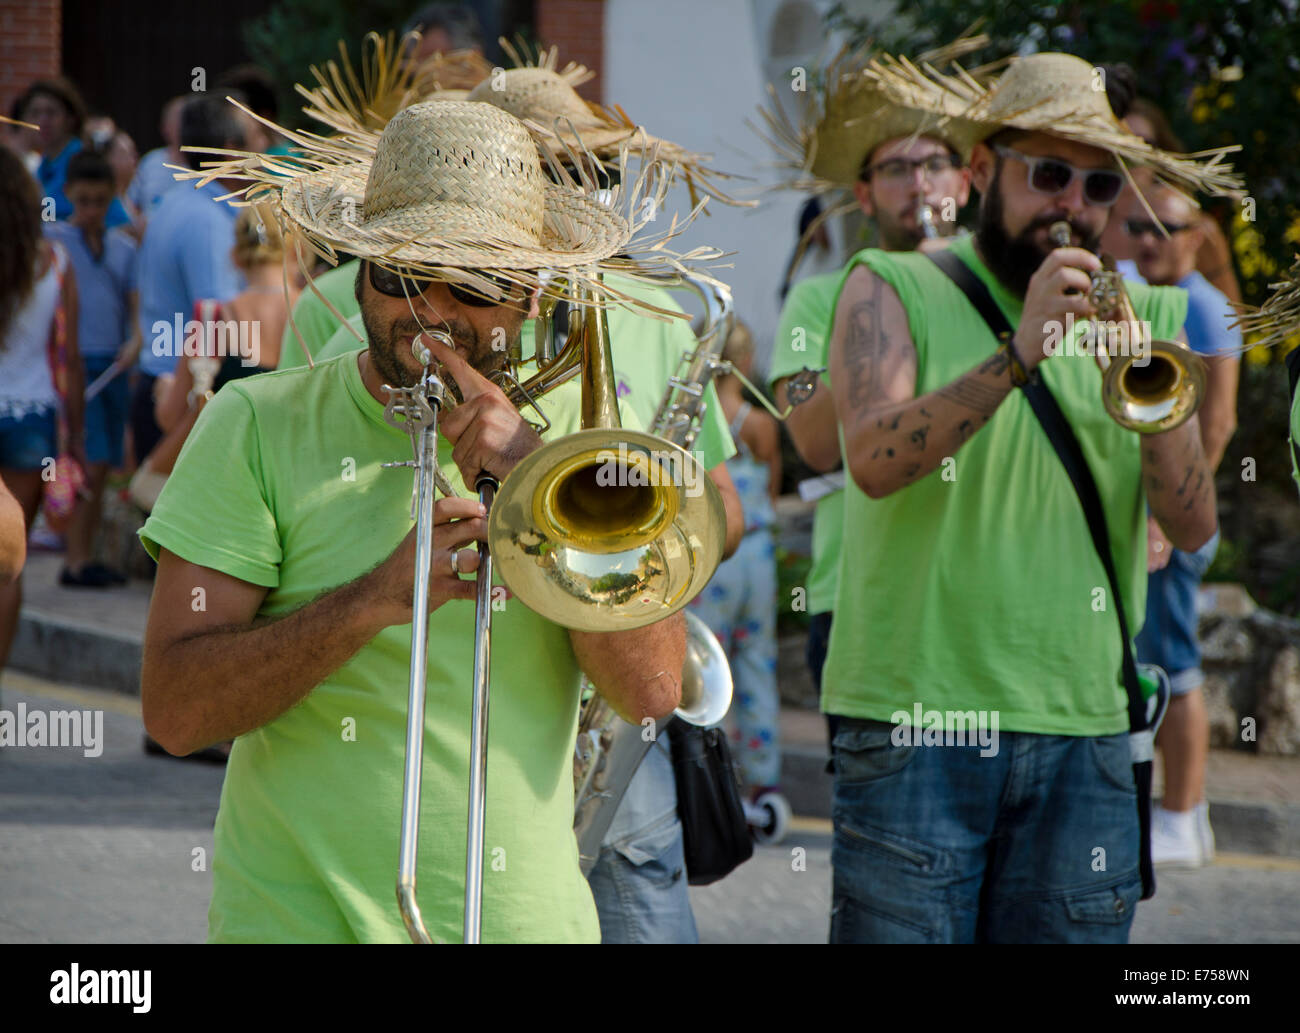 Informal marching Sreet band during the Feria of Mijas Pueblo in Southern Spain - Stock Image